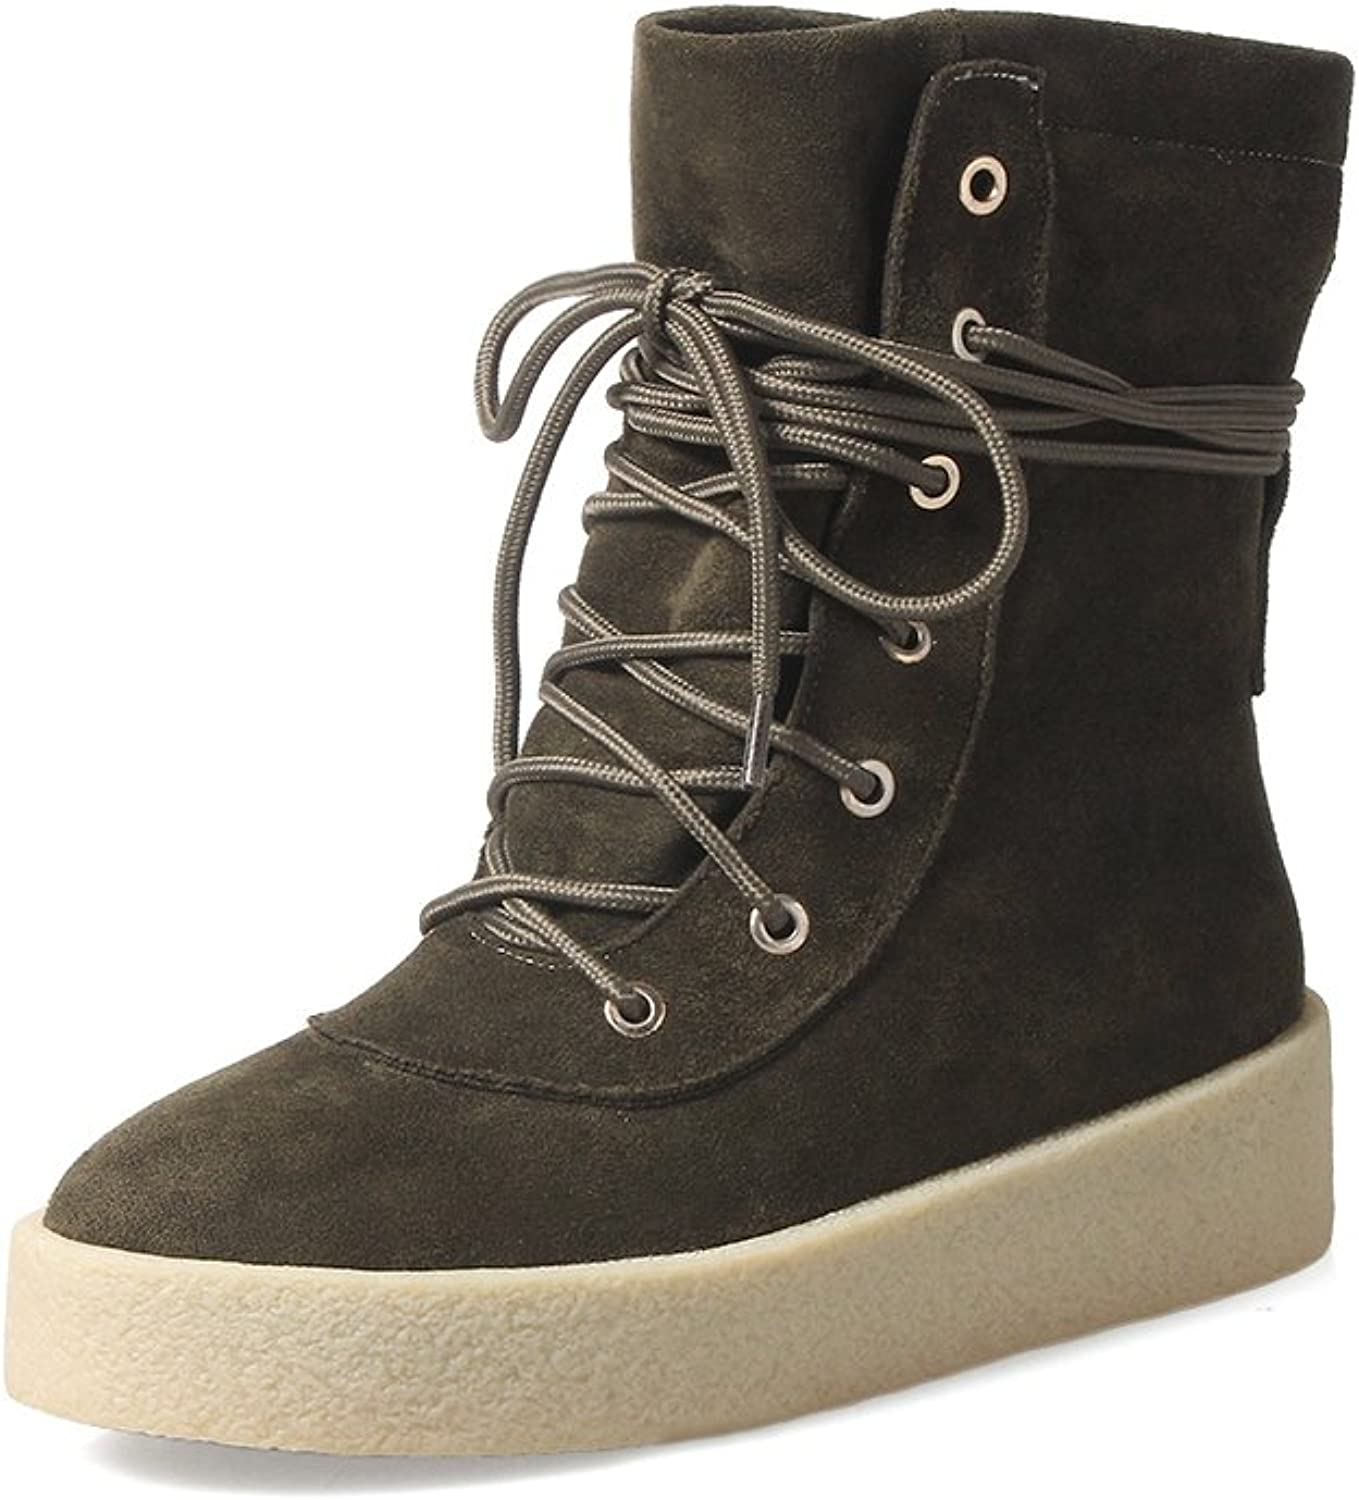 MINIVOG Women's Boots Suede Round Toe Winter Ankle Booties